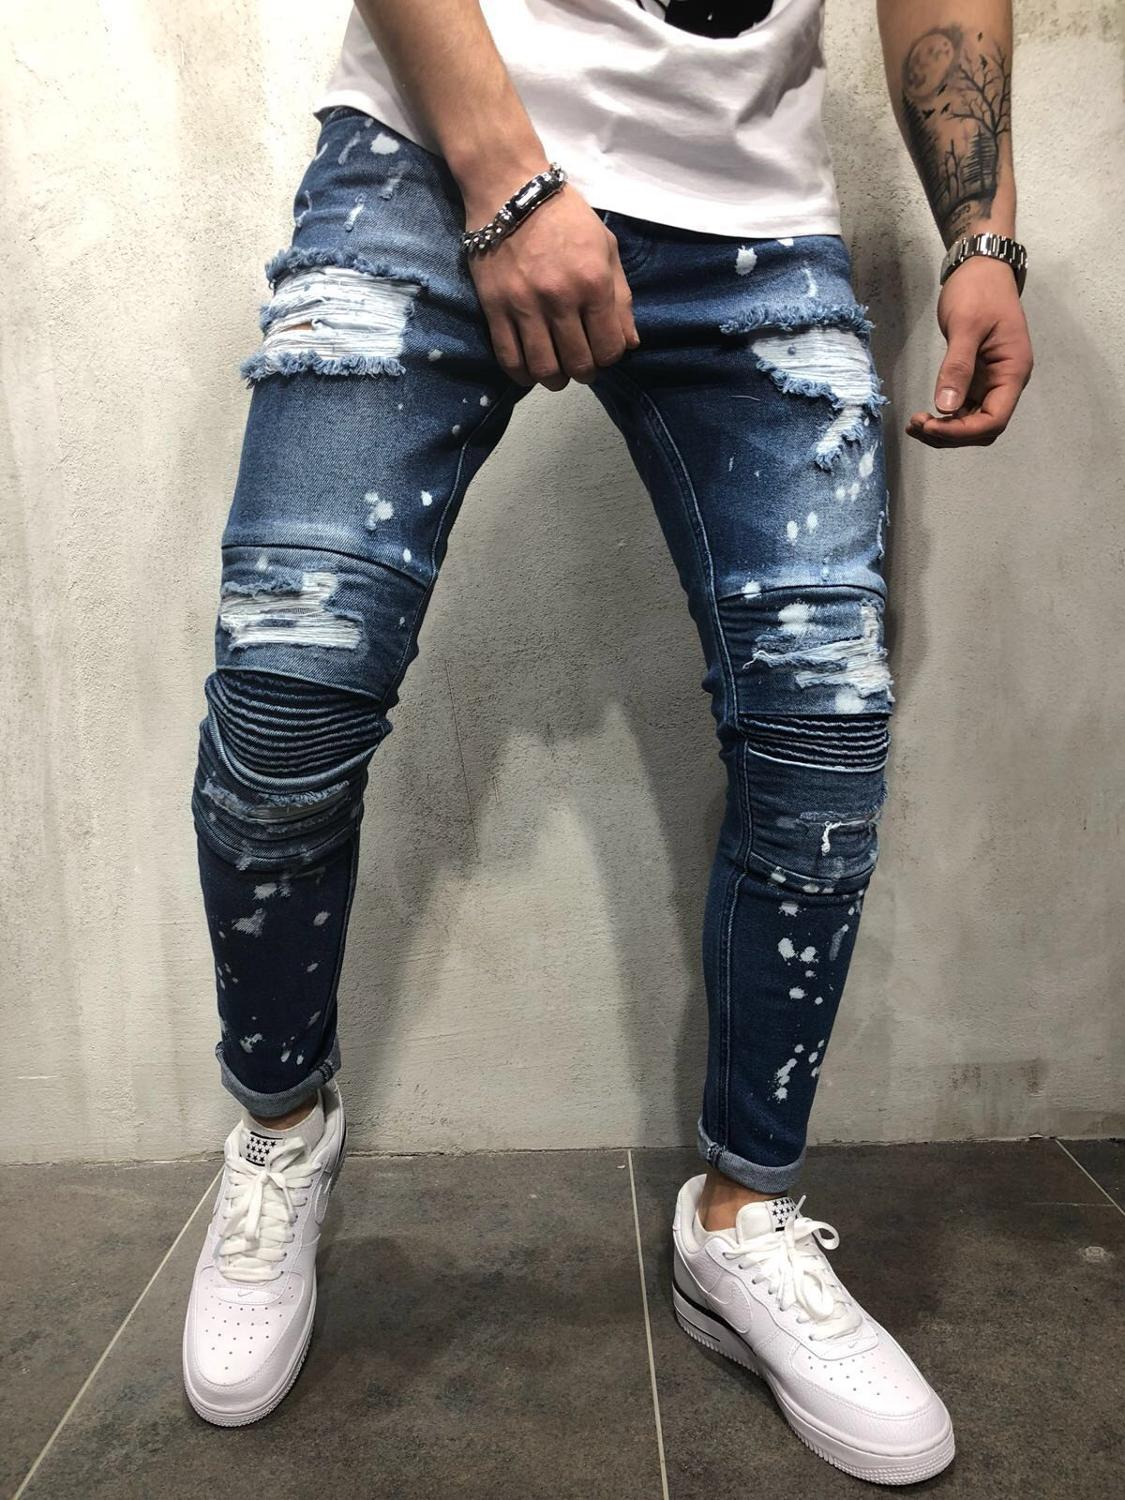 New Men Summer  Brand  Jeans Broken Hole Hip-hop  High Street Ripped Holes Jeans Pants Pleated Streak Plus Size  Haulage Motor B